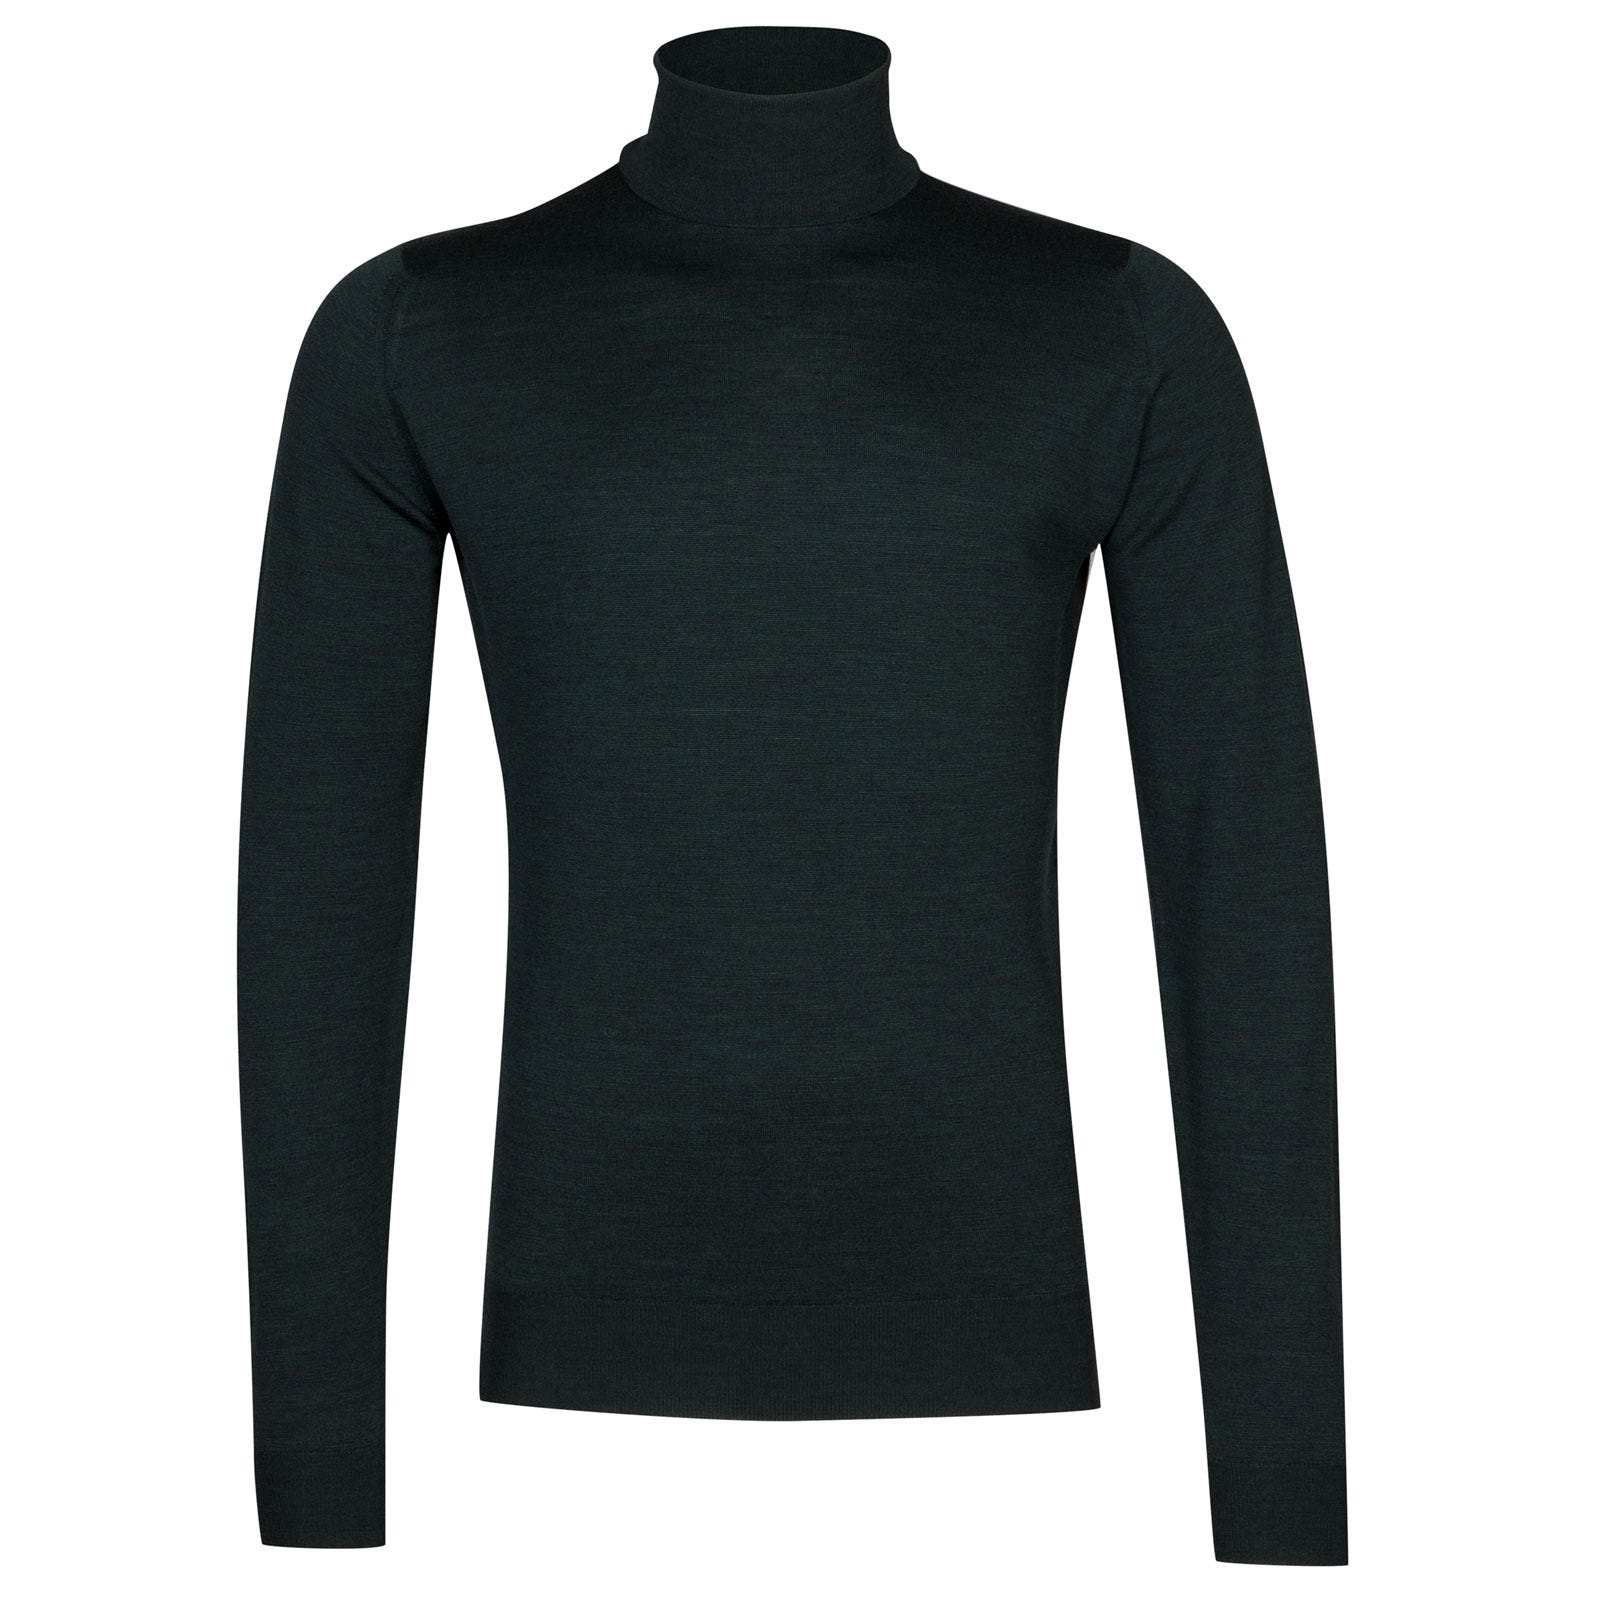 John Smedley cherwell Merino Wool Pullover in Racing Green-L